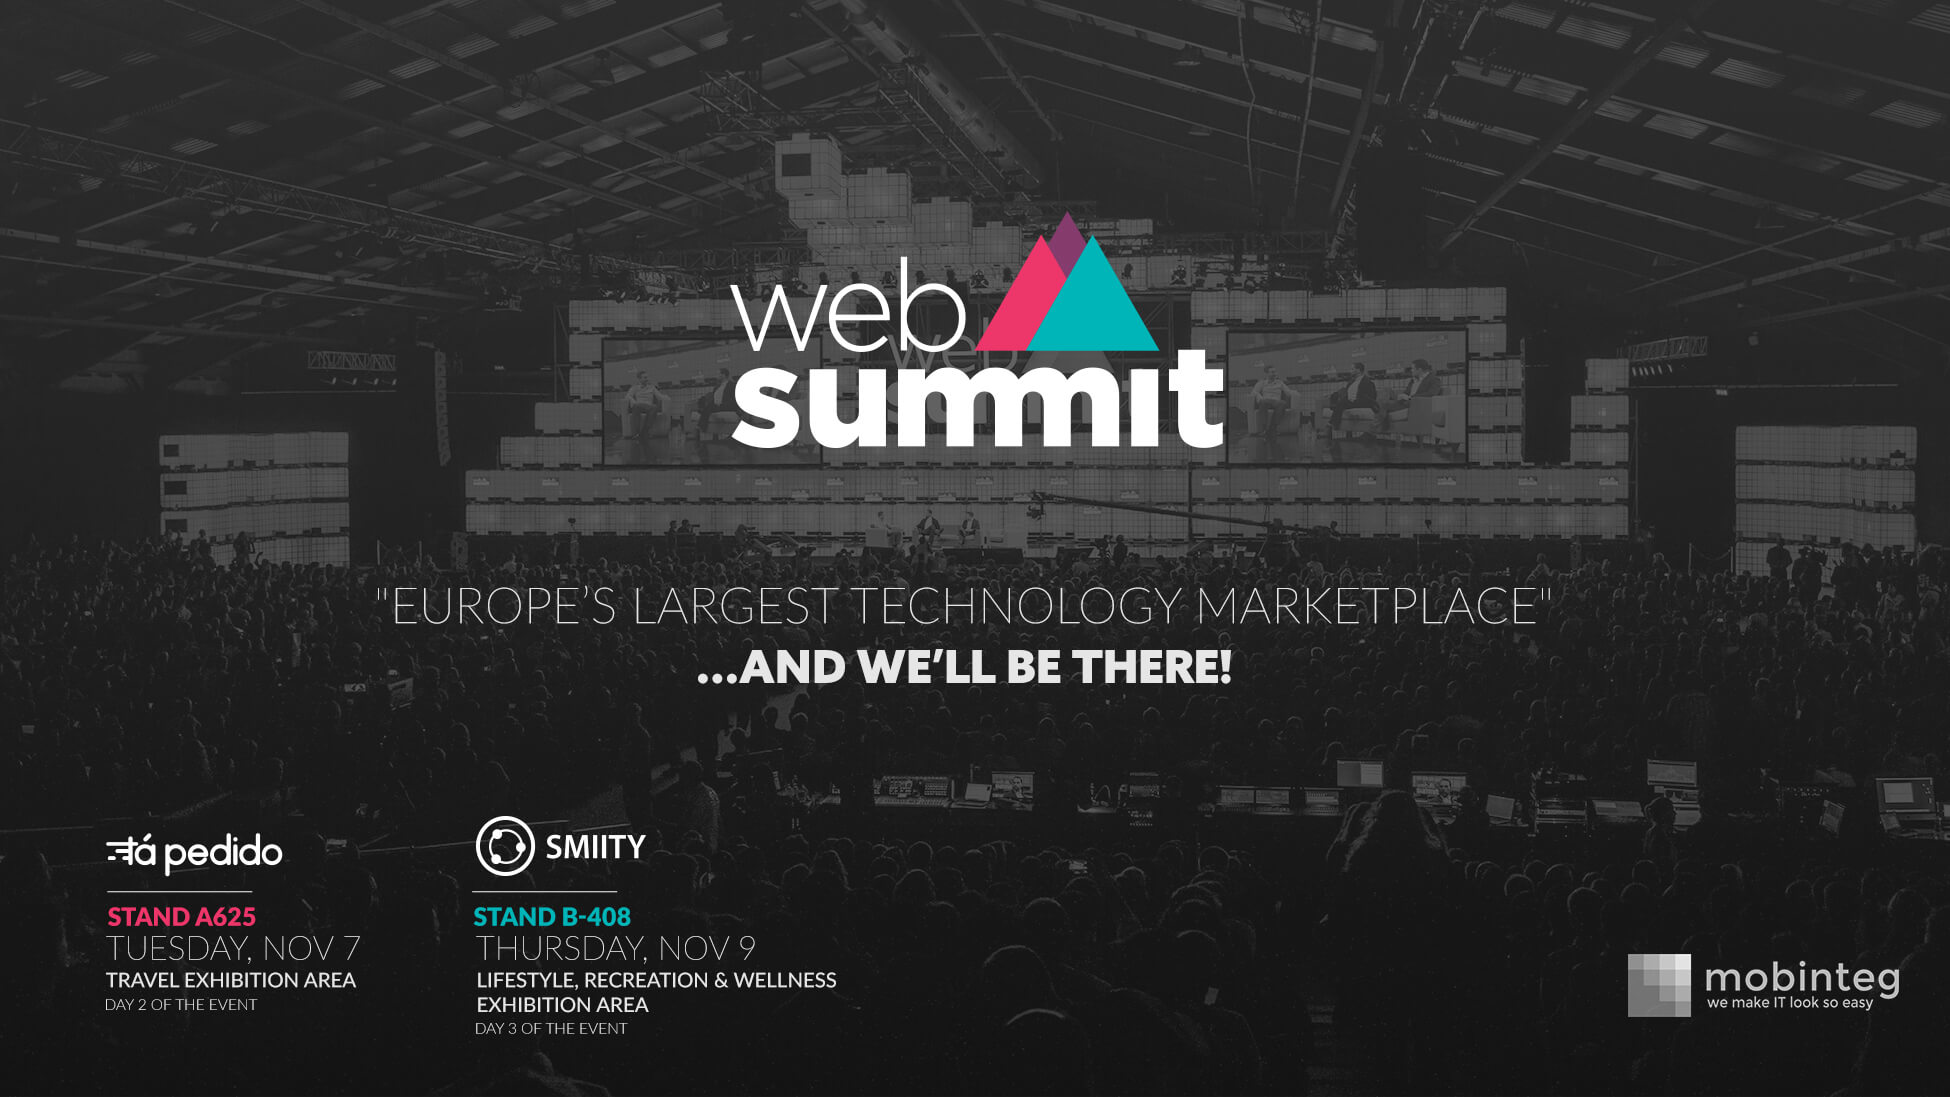 mobinteg will have two stands at Web Summit 2017